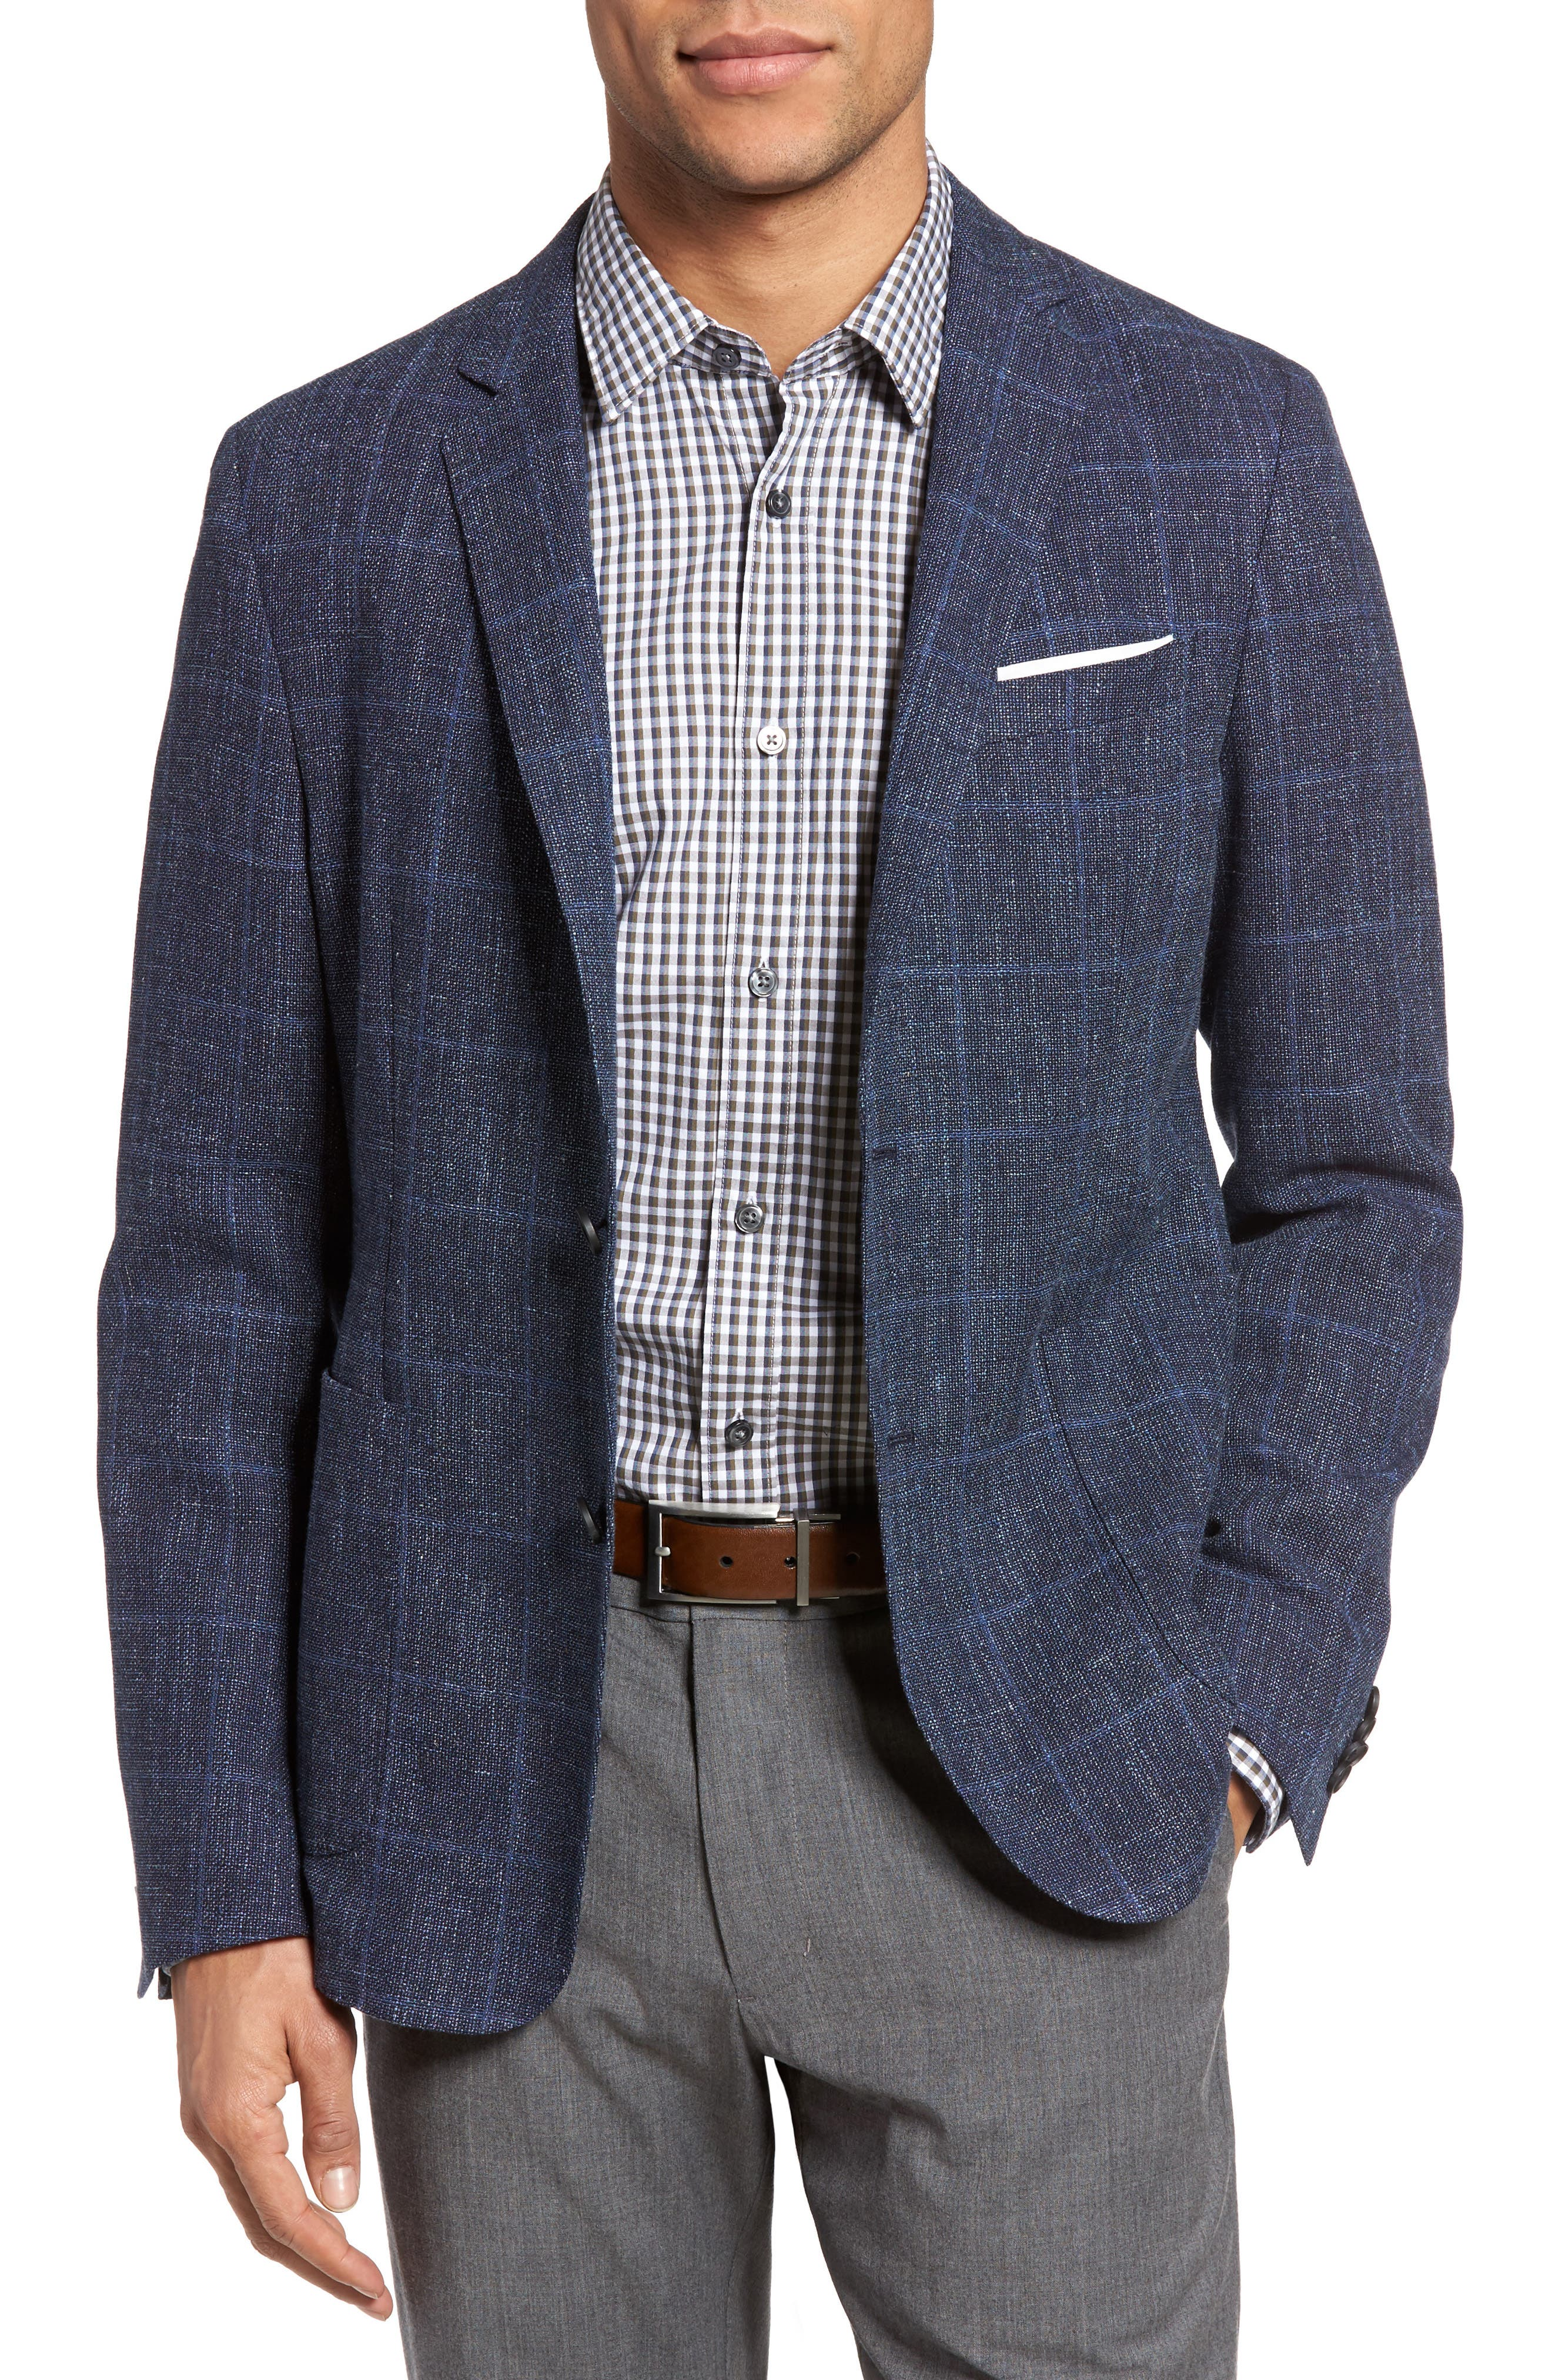 Alternate Image 1 Selected - BOSS Nold Trim Fit Unconstructed Wool Blend Sport Coat